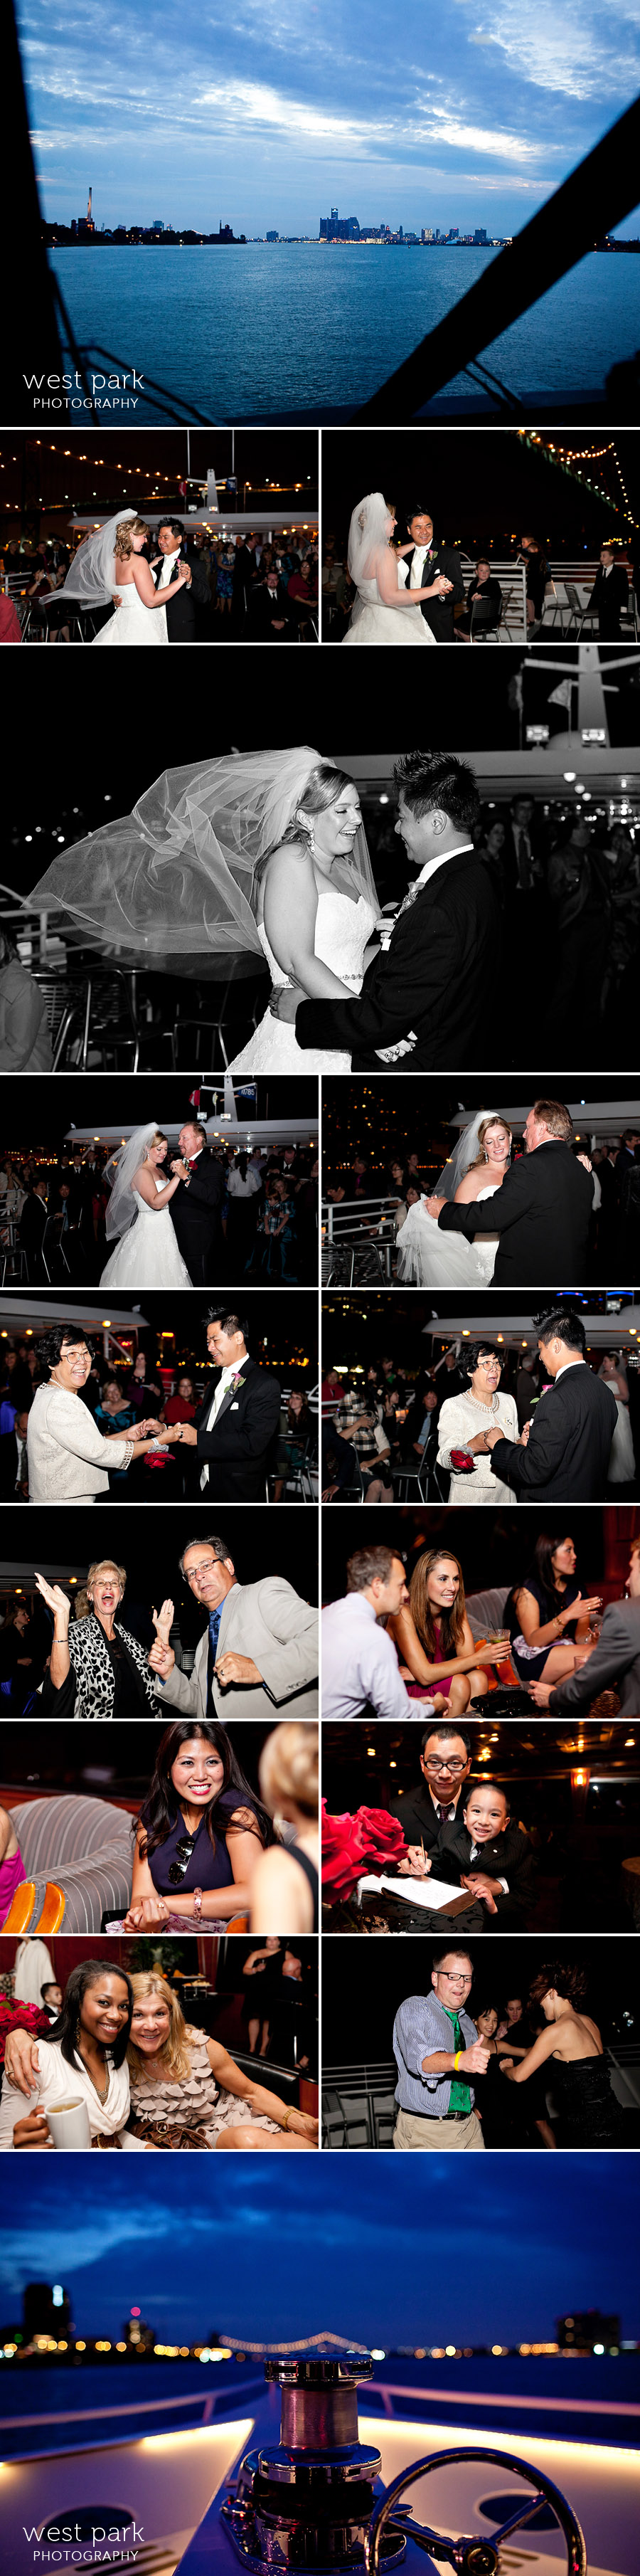 ovation wedding 04 Keri + Sam: Ovation Wedding